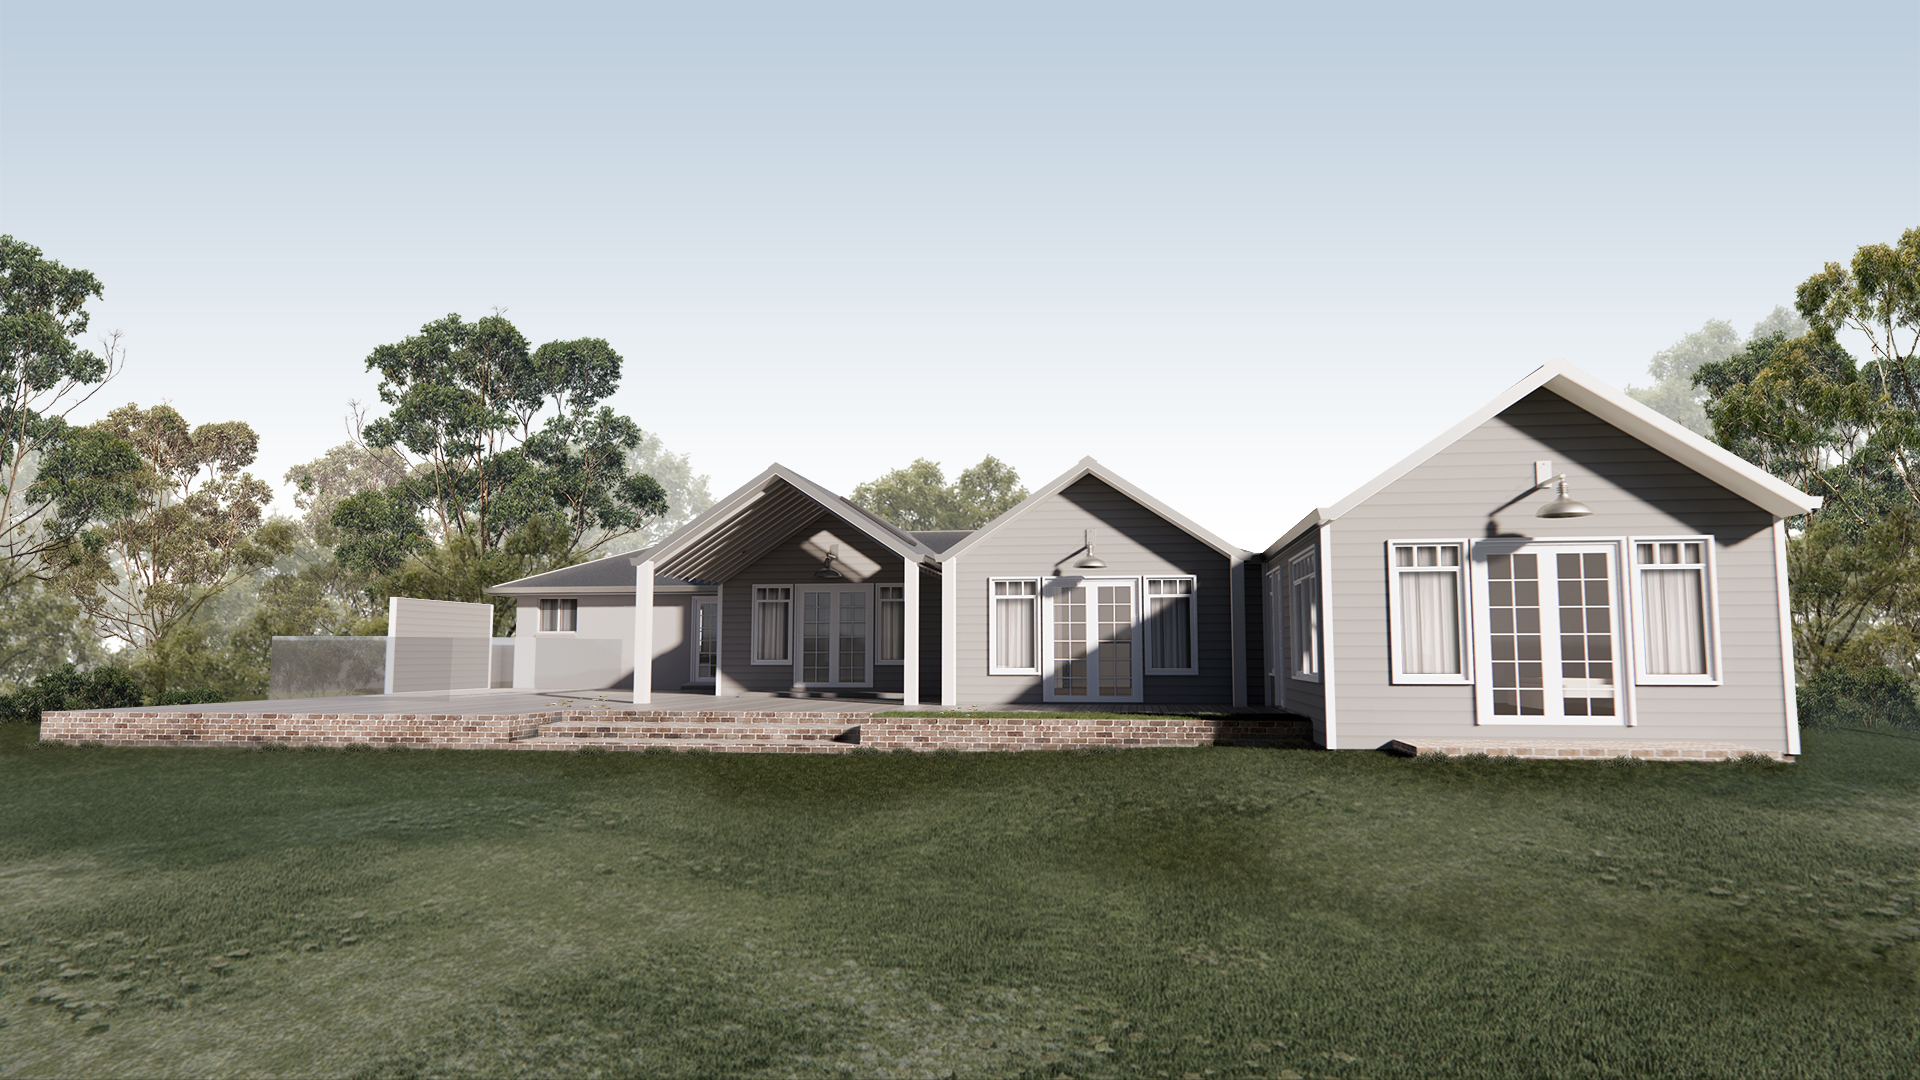 Bargo-Residential-Alterations-Additions-2